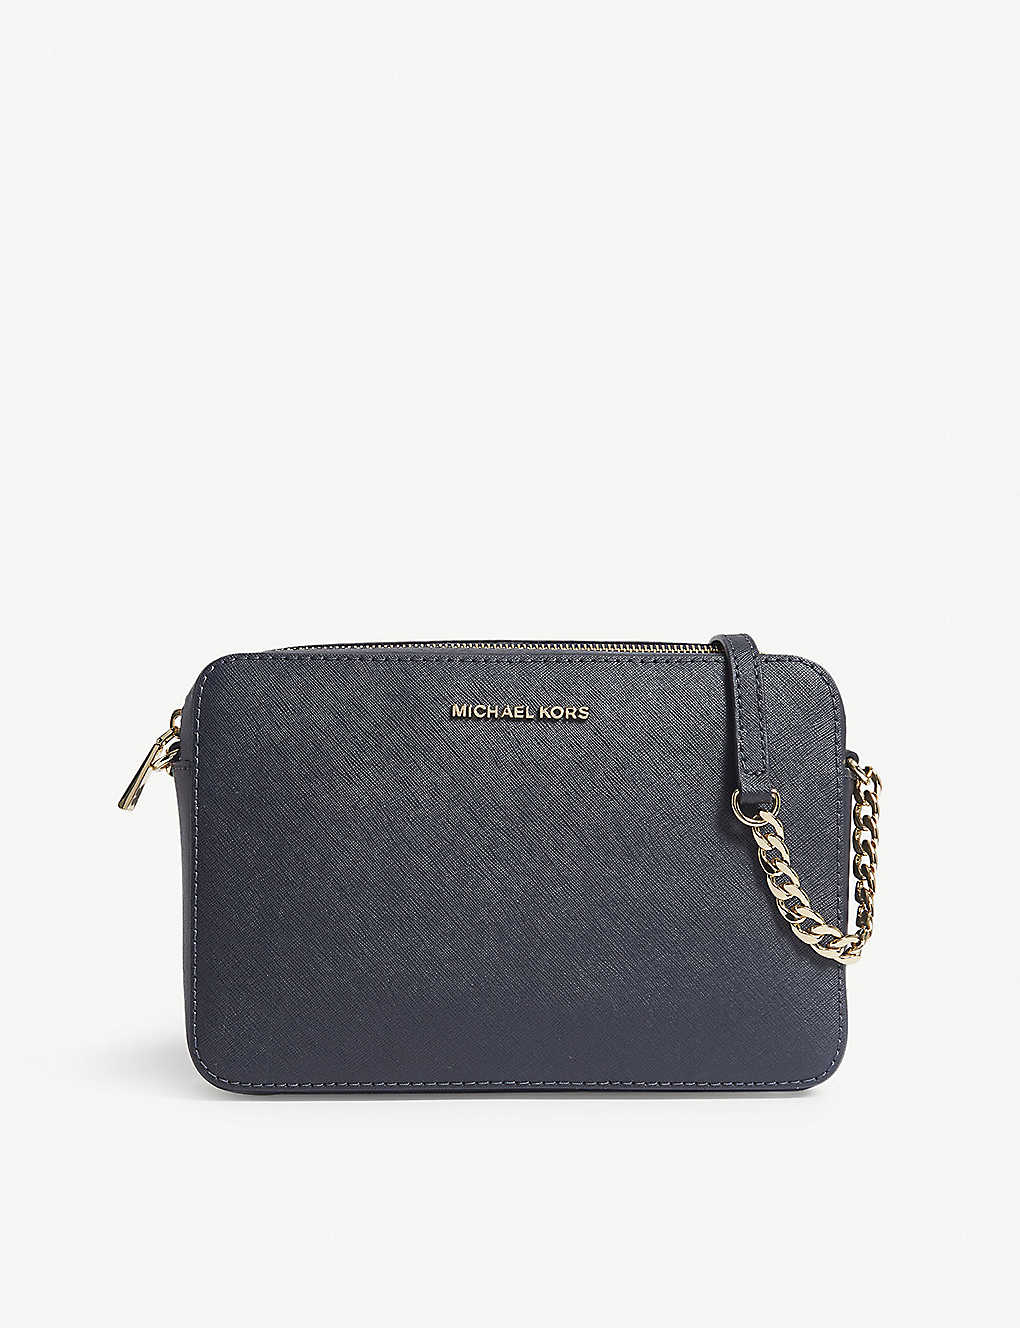 MICHAEL MICHAEL KORS: Jet Set leather cross-body bag